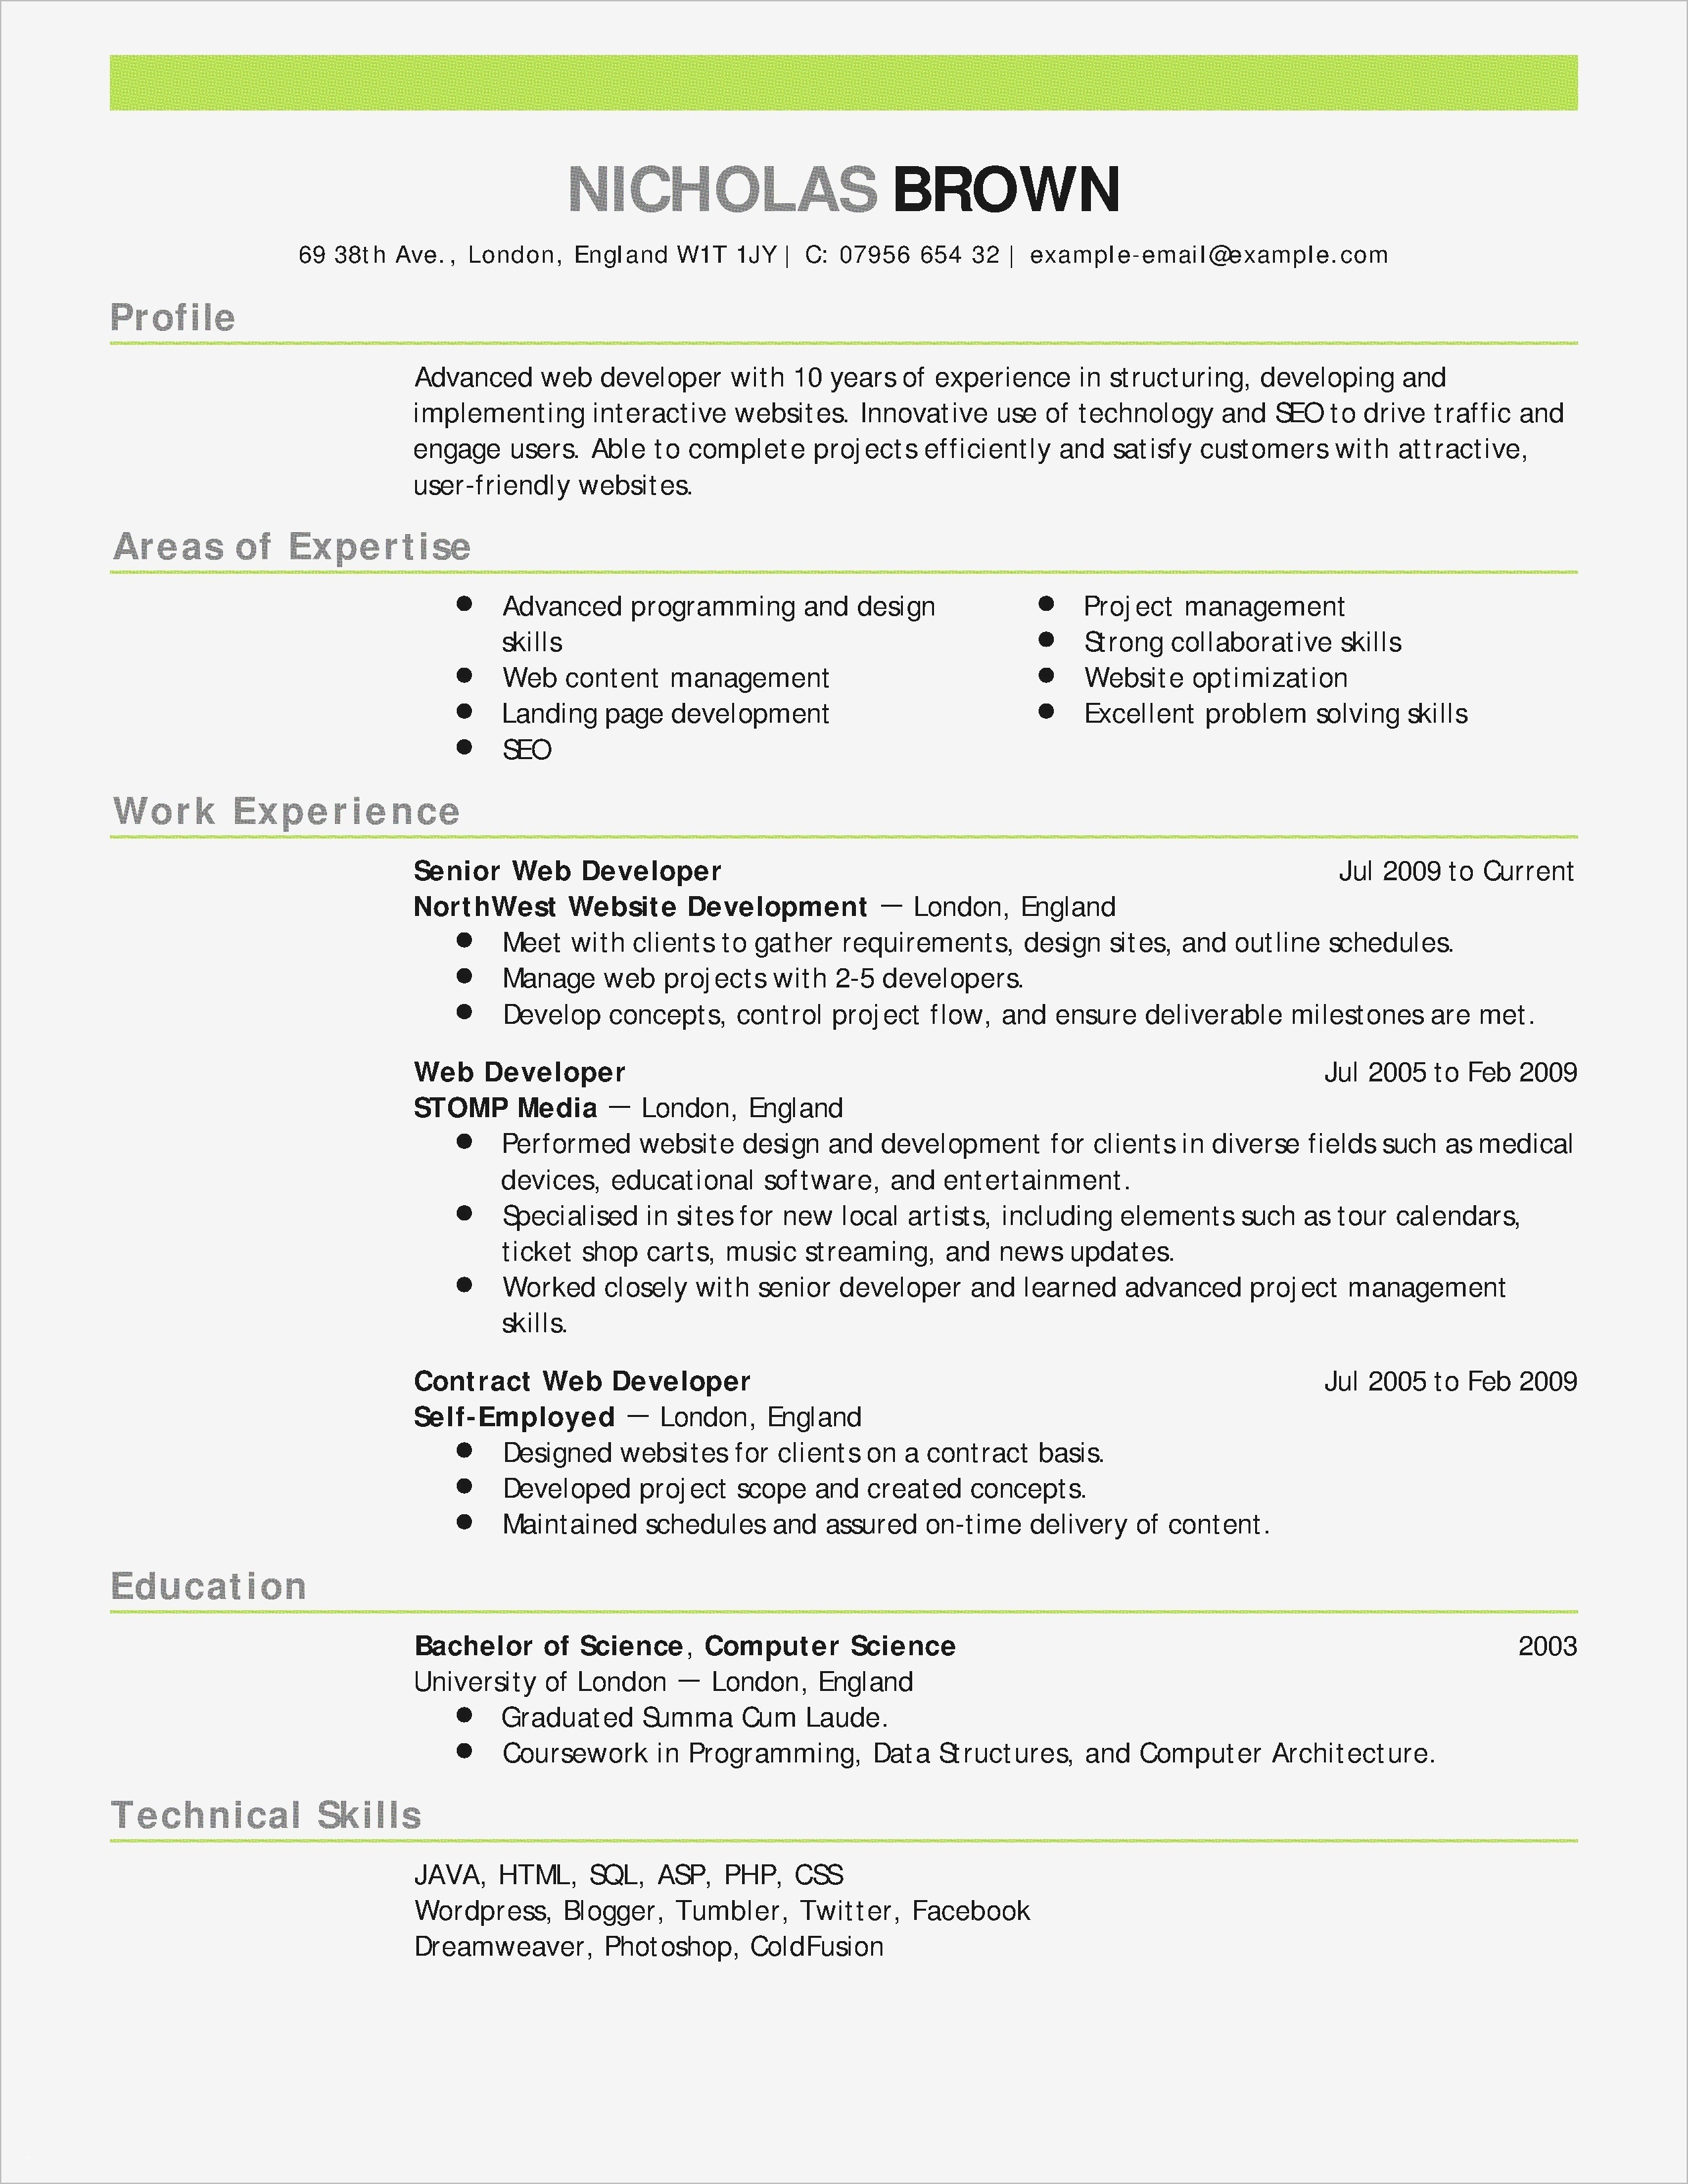 Fbi Resume format - Awesome Fbi Resume Template